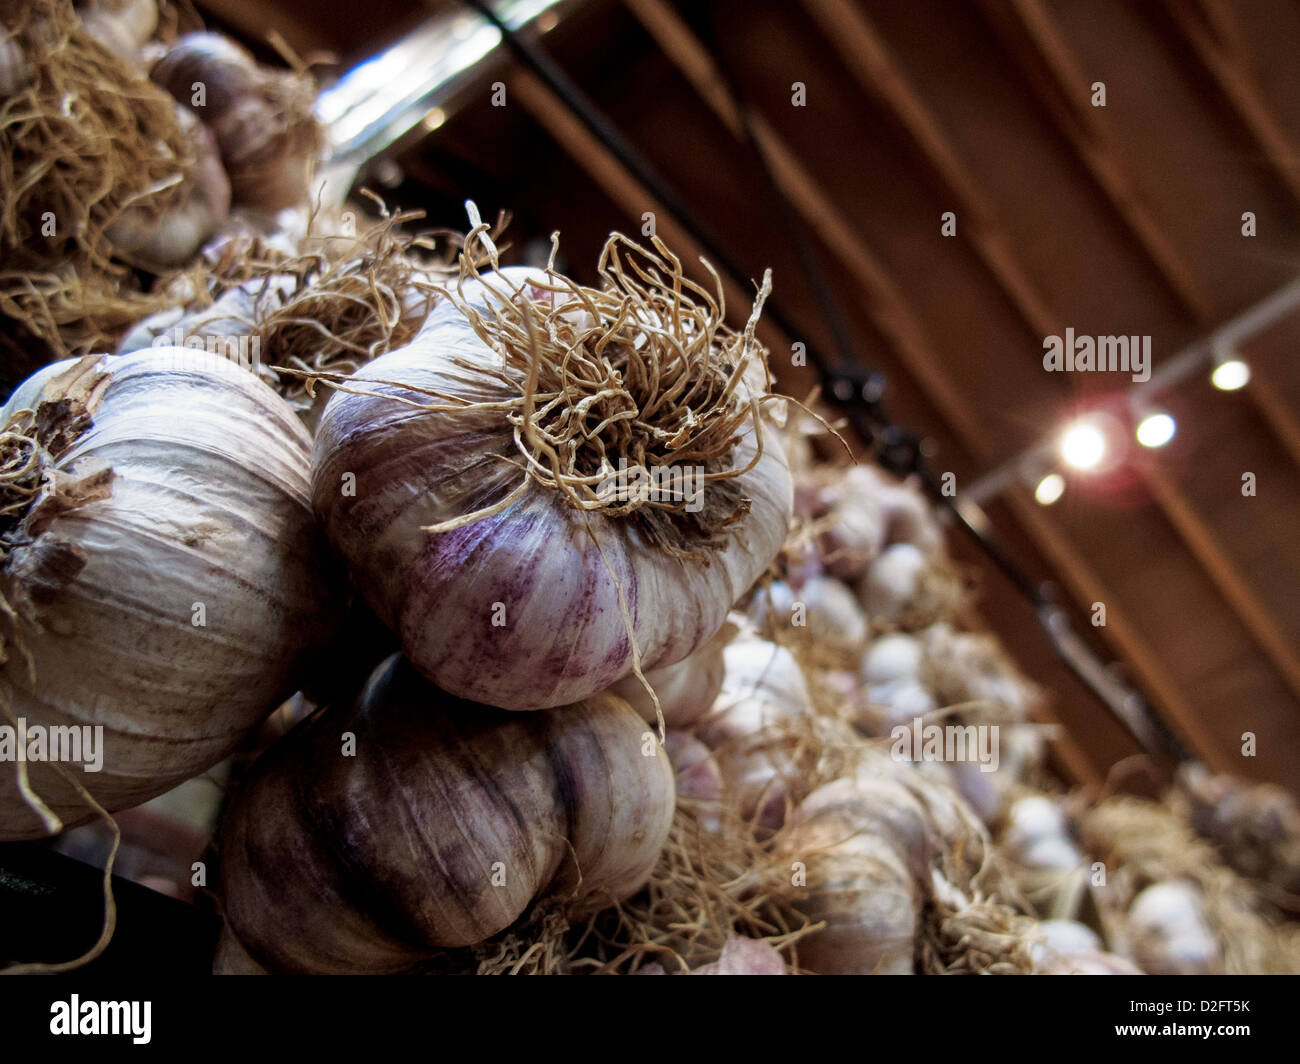 The Garlic farm on the isle of wight. Elephant garlic in the shop - Stock Image